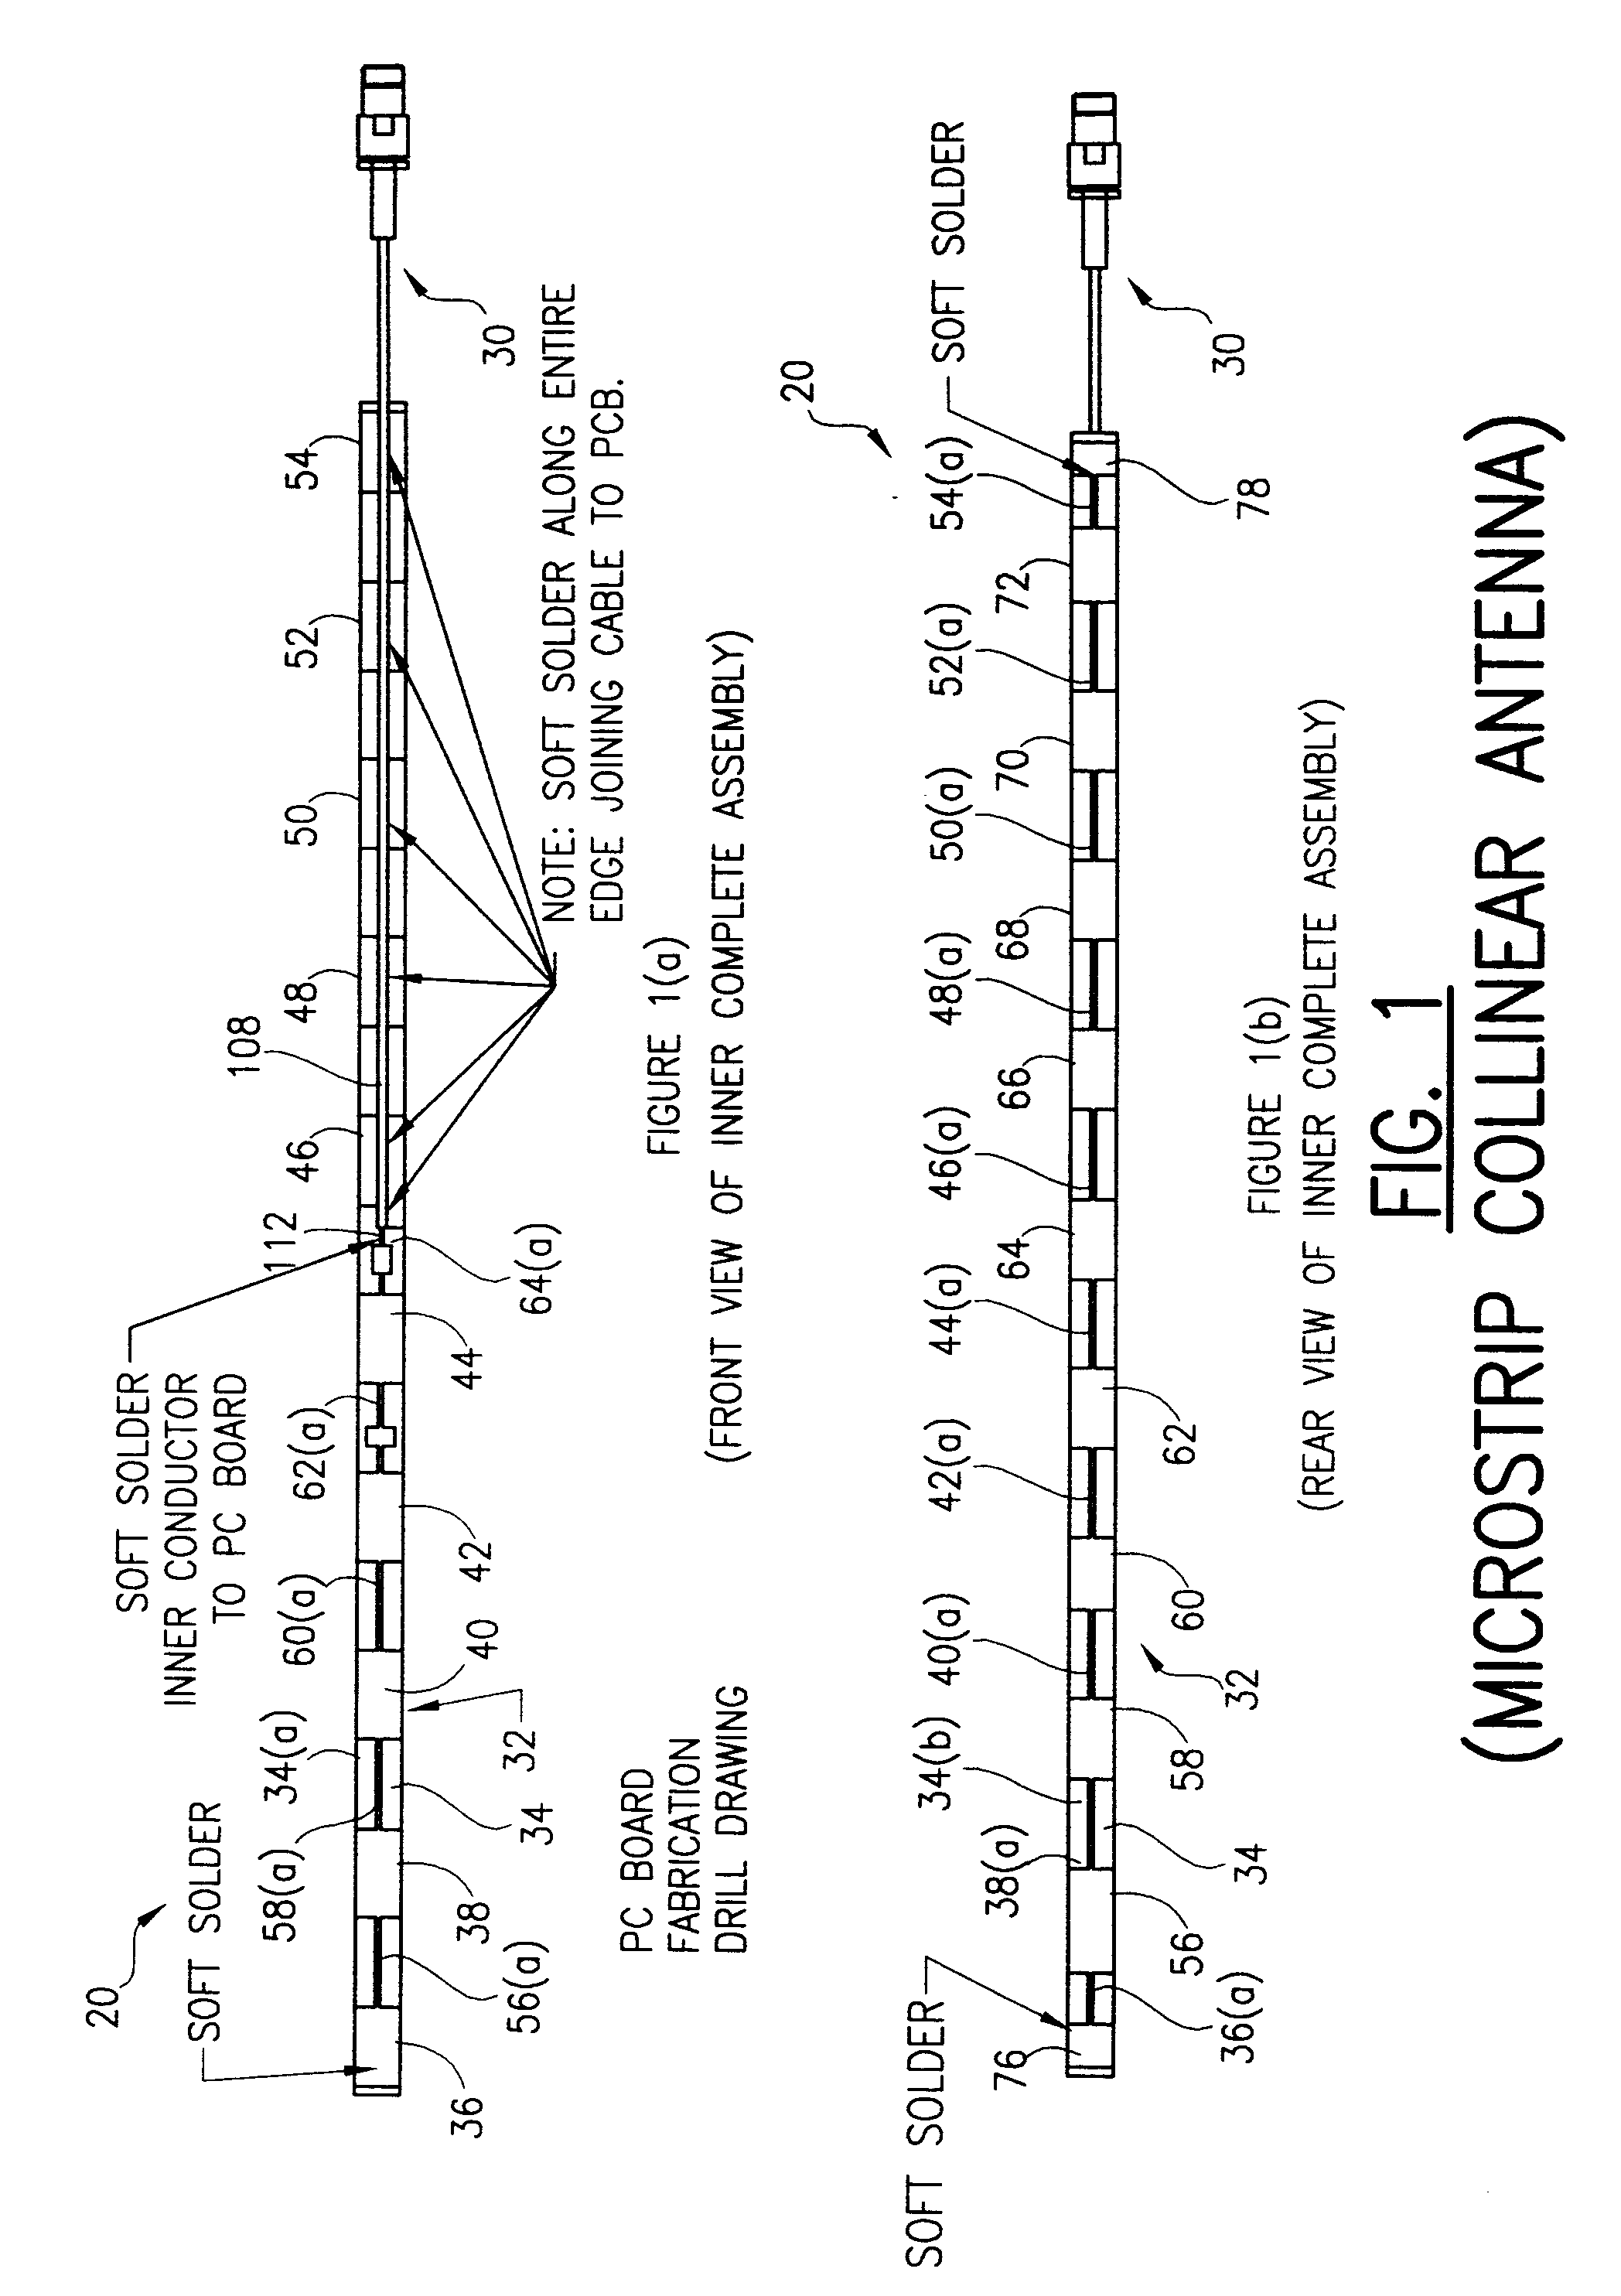 patent ep0855760a2 - microstrip collinear antenna